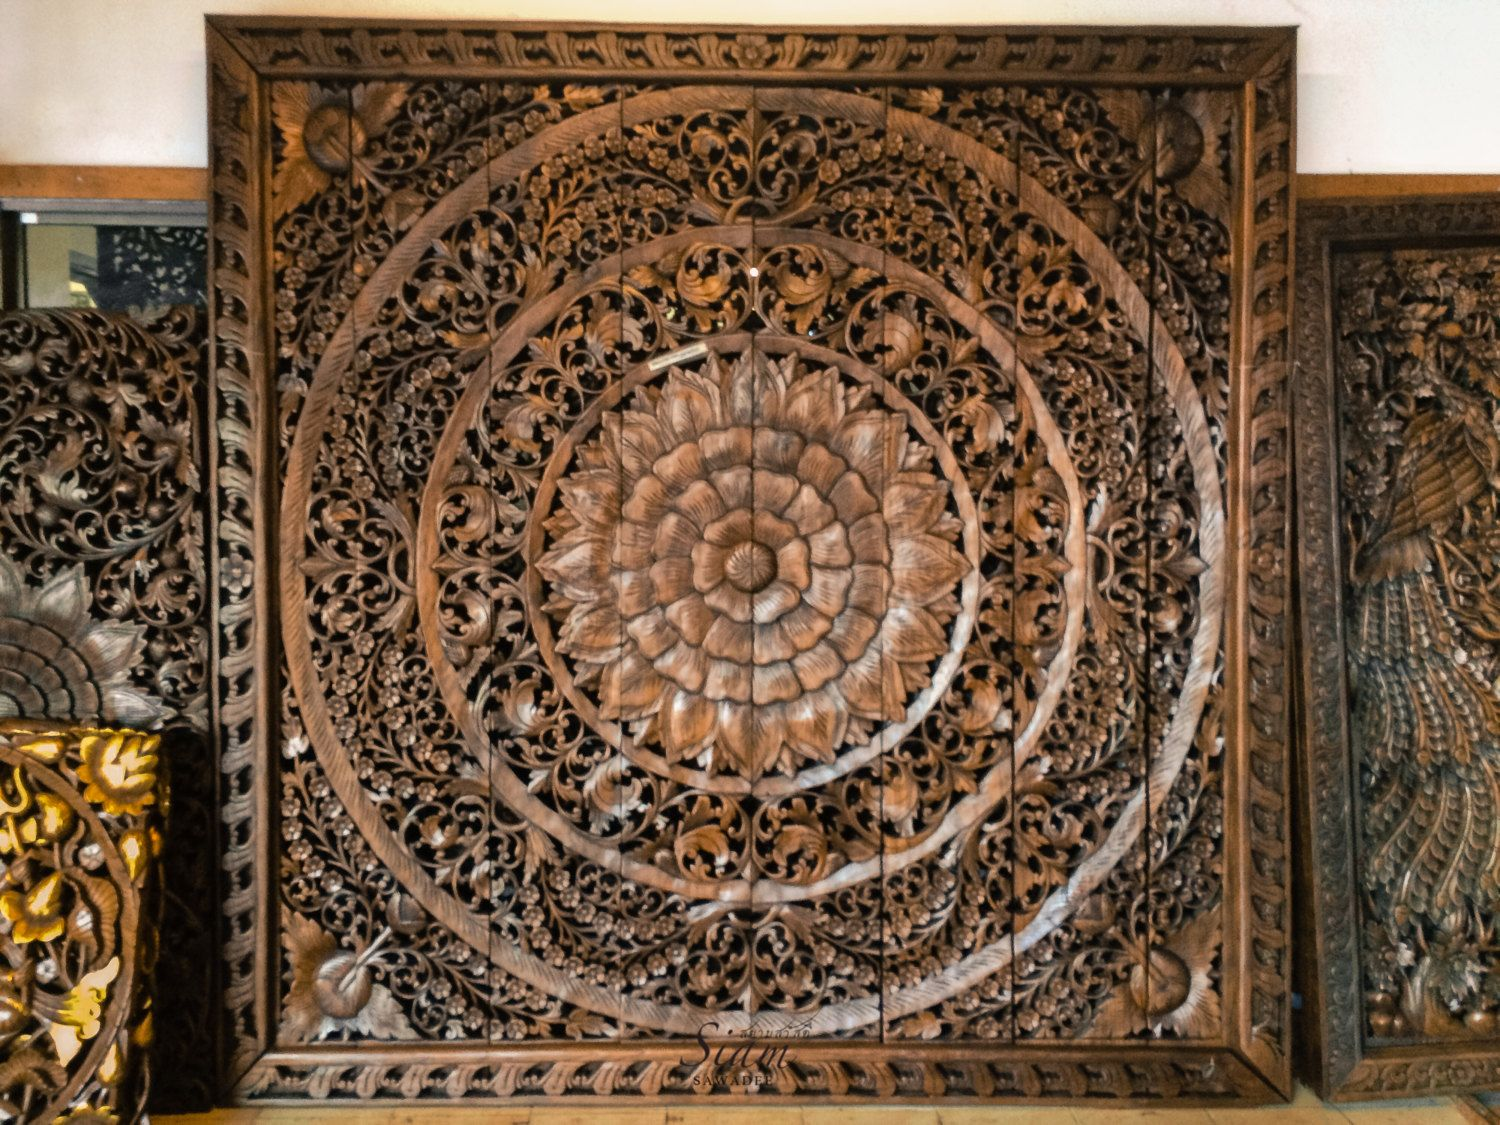 Large carved wood panel teak wood wall hanging decorative balinese lotus flower oriental - Wooden panel art ...